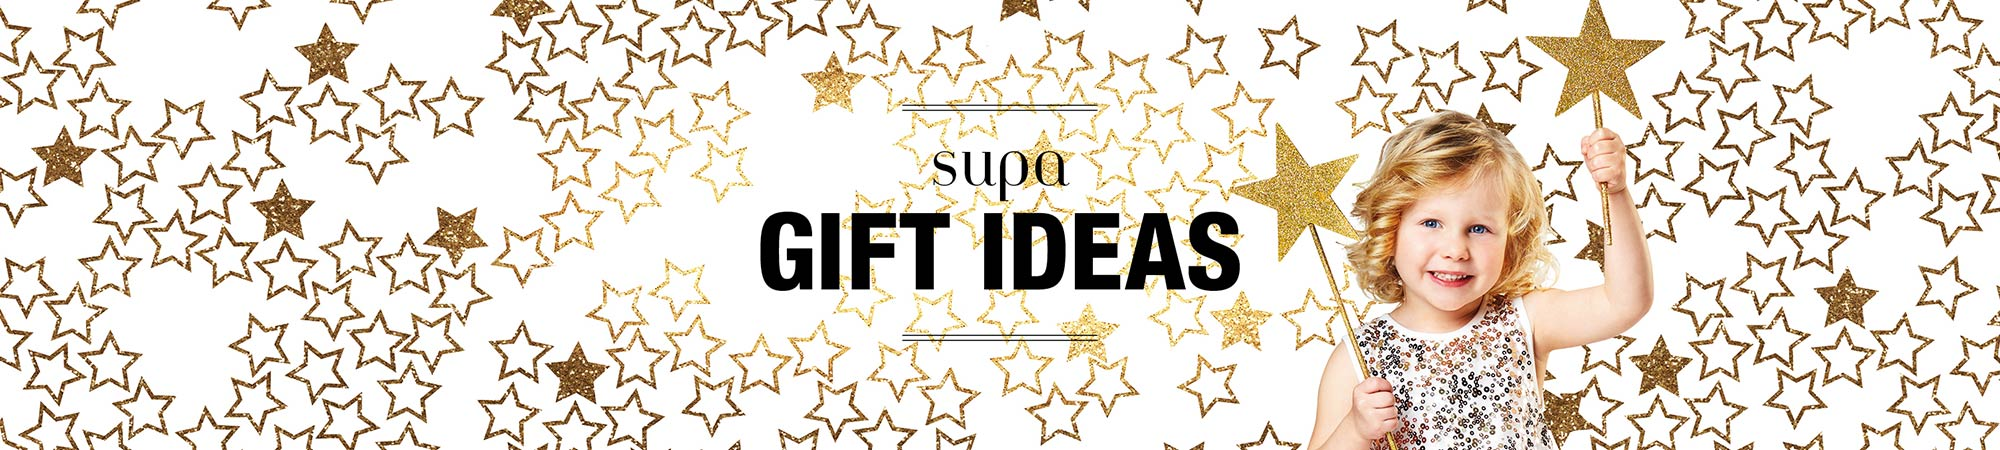 Supa Gift Ideas for Him!